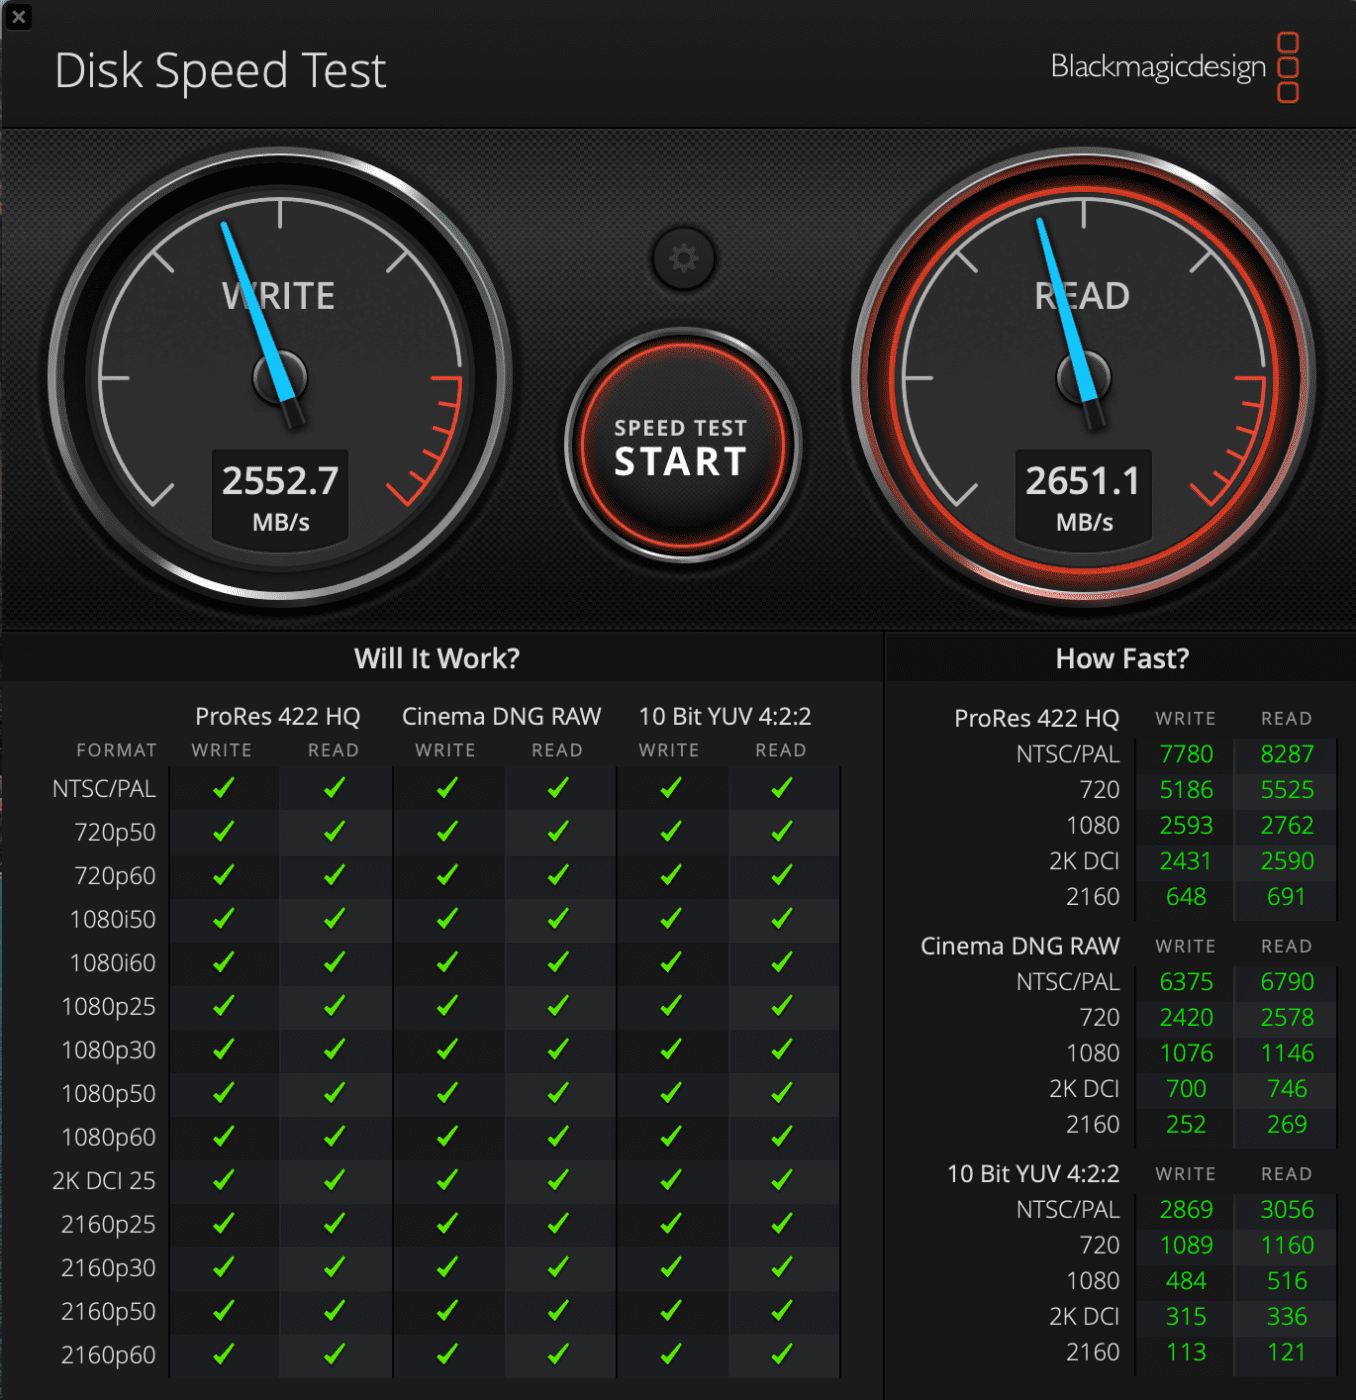 Disk Speed Test results: 16-inch MacBook Pro / 2.3 GHz 8-core Intel Core i9, 32GB RAM, 2TB SSD